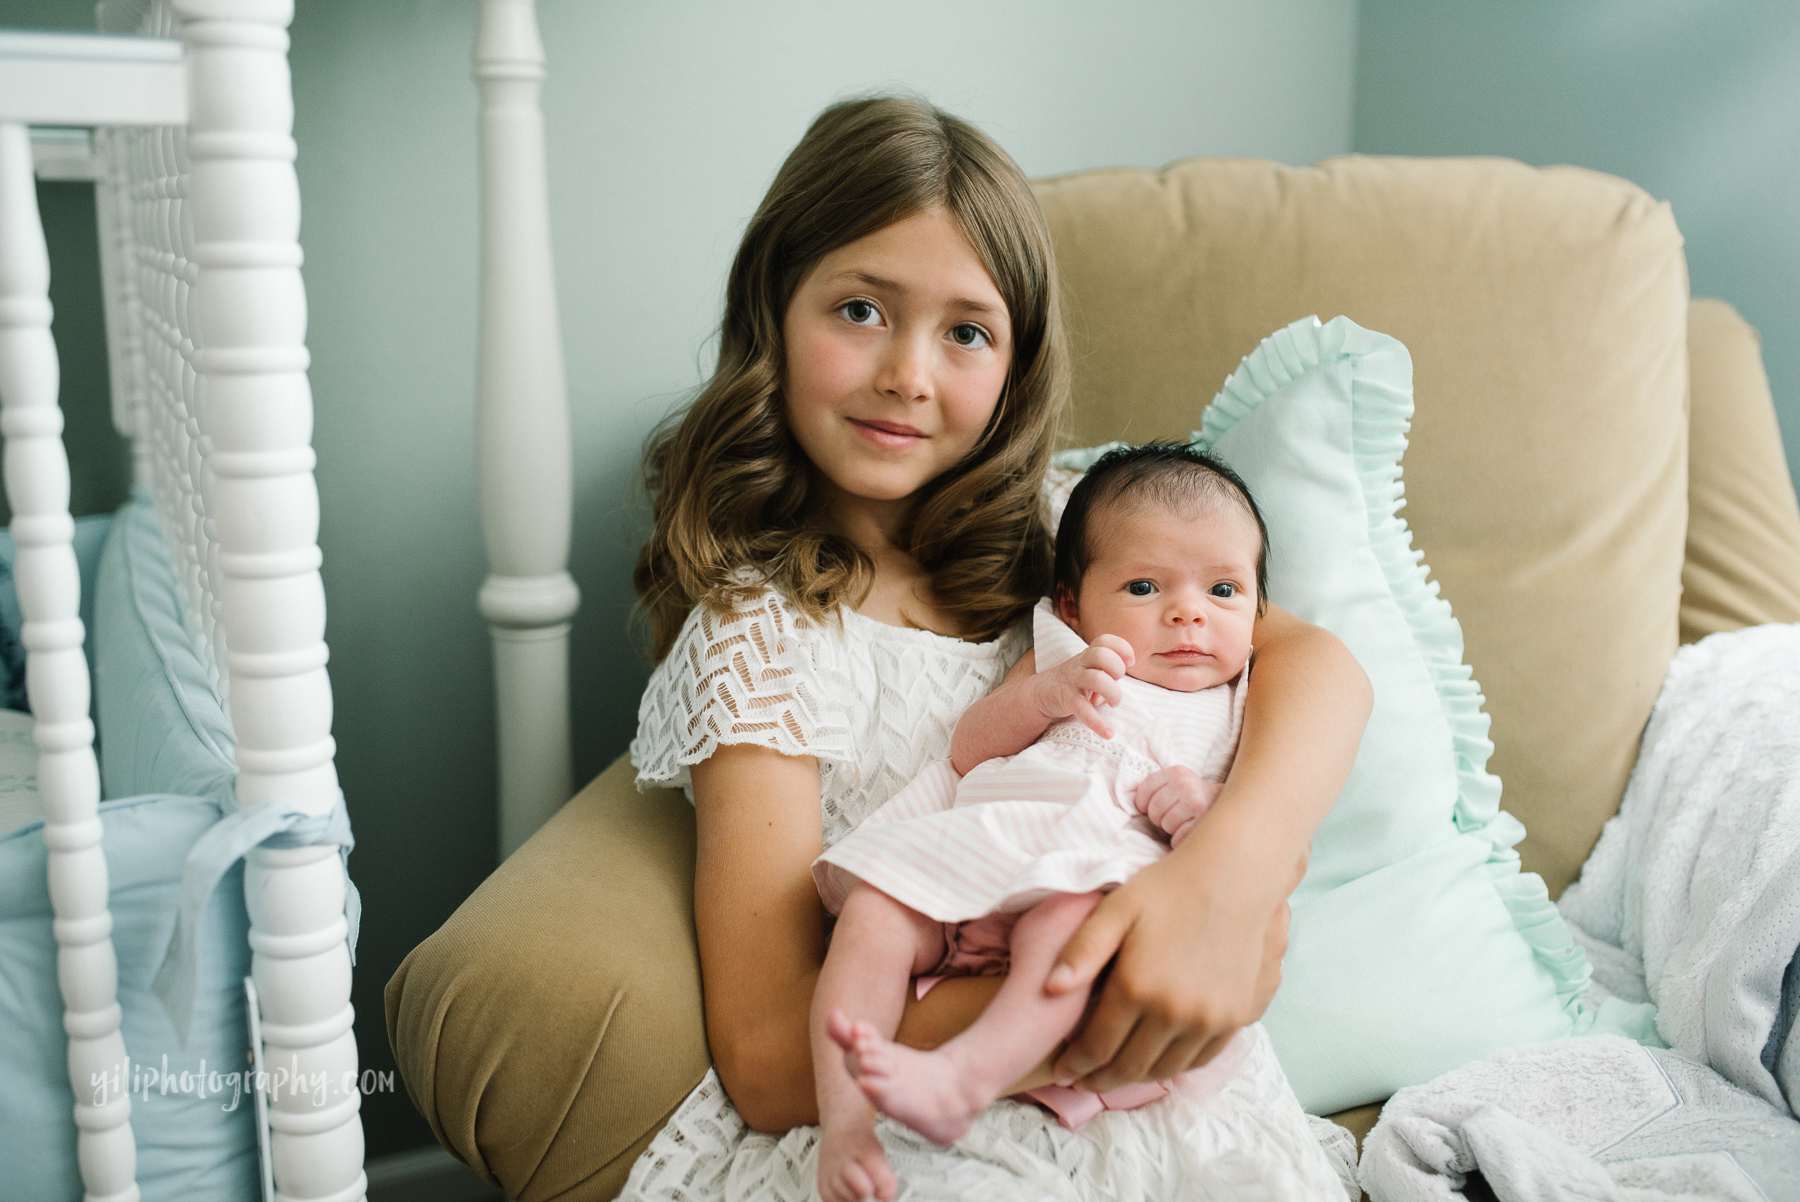 elementary school girl holding newborn baby sister in armchair